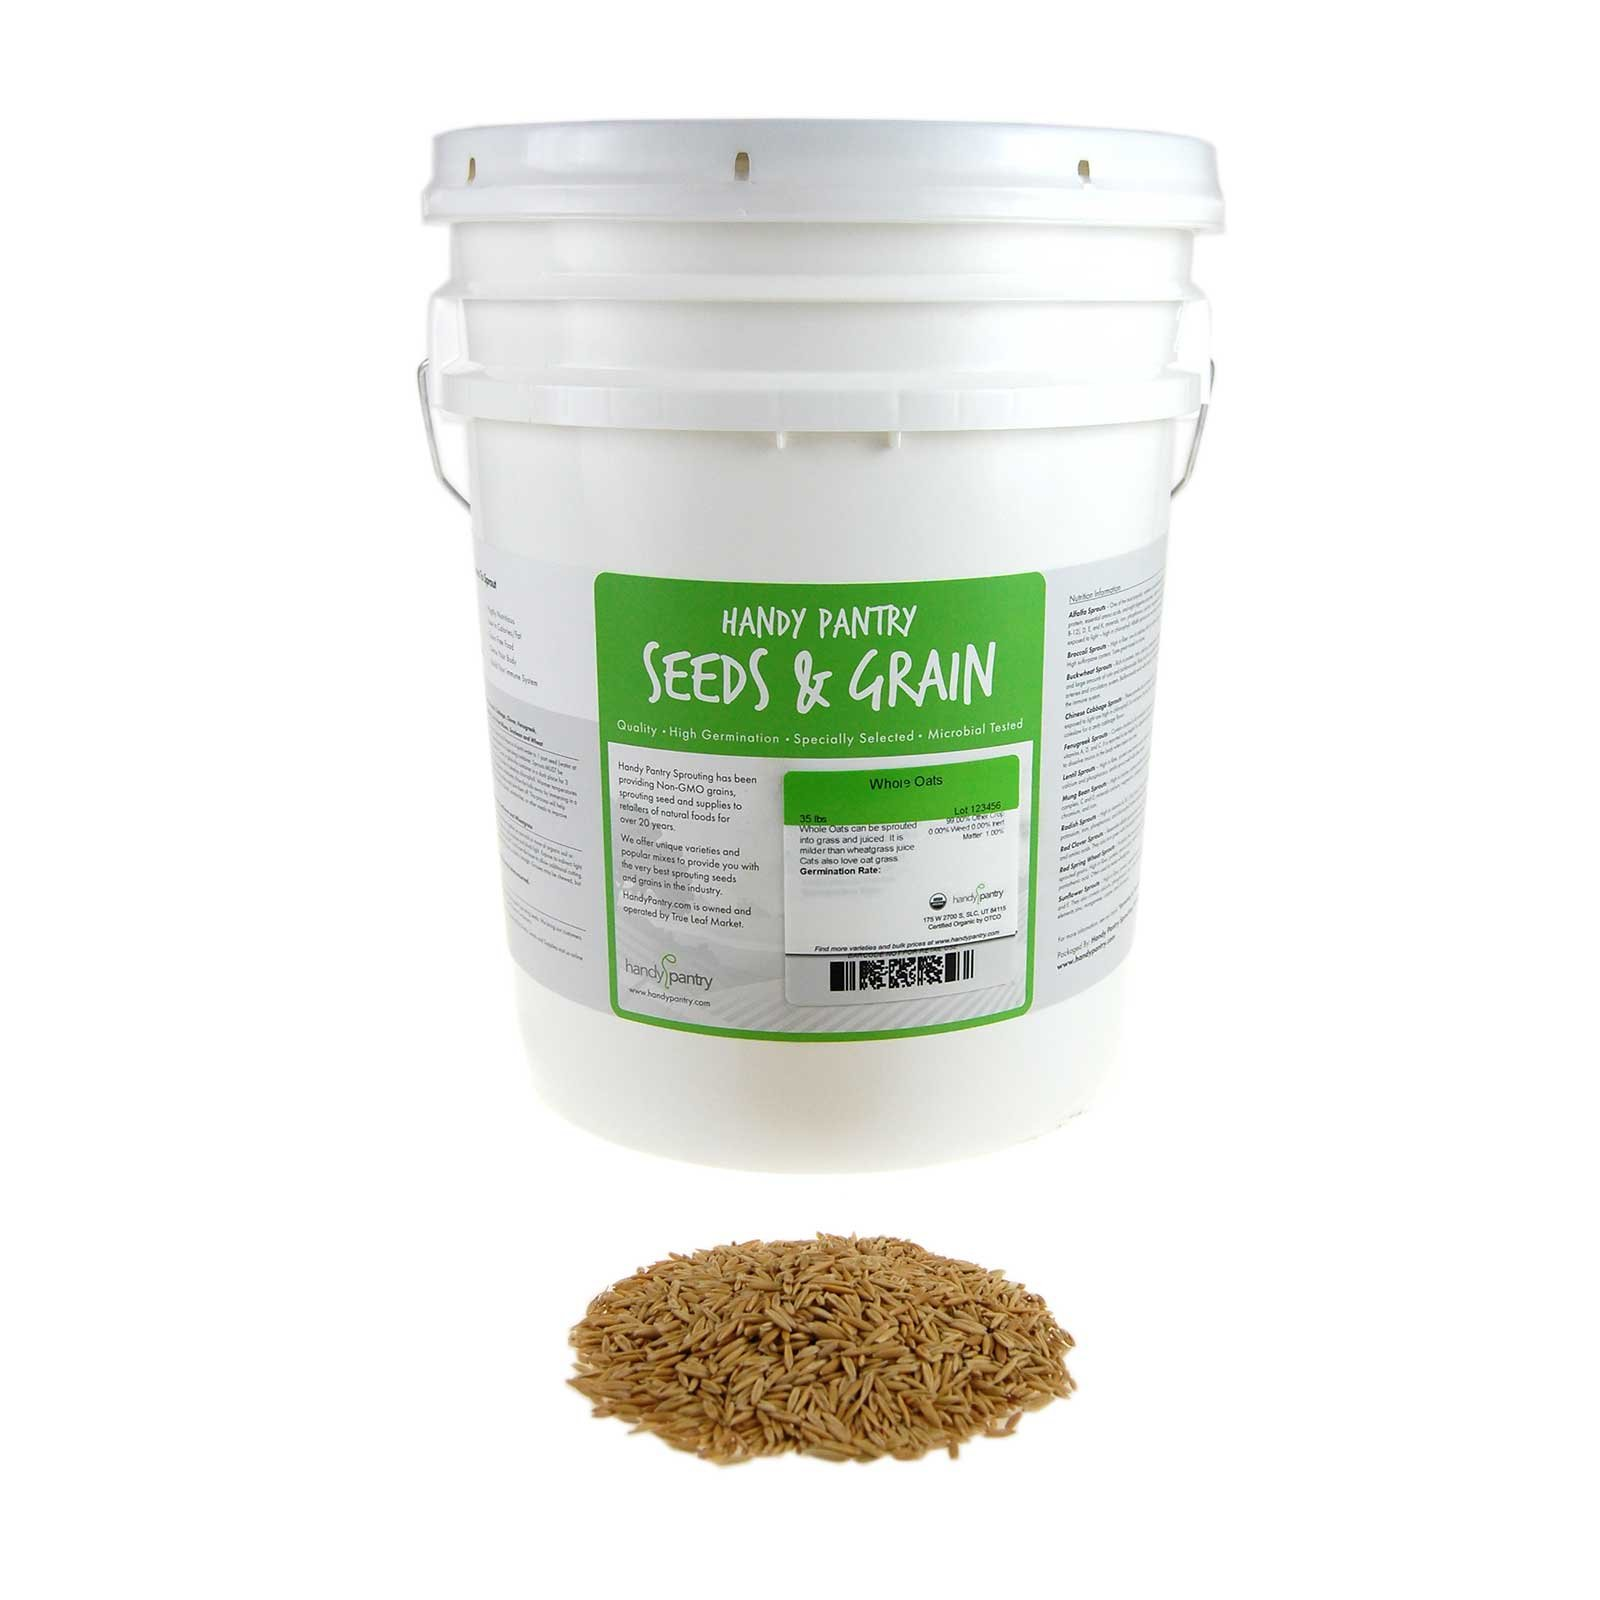 Organic Non-GMO Whole Oat Grain Seeds (With Husk Intact)- 25 Lb Re-Sealable Bucket- Oats Seed Grains, for Sprouting, Oat Grass, Animal Feed, Storage & More